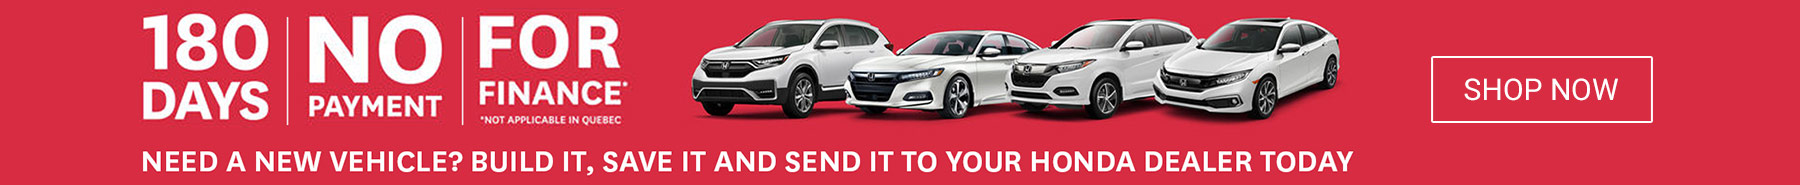 May 2020 Honda Offer Banner 68x7